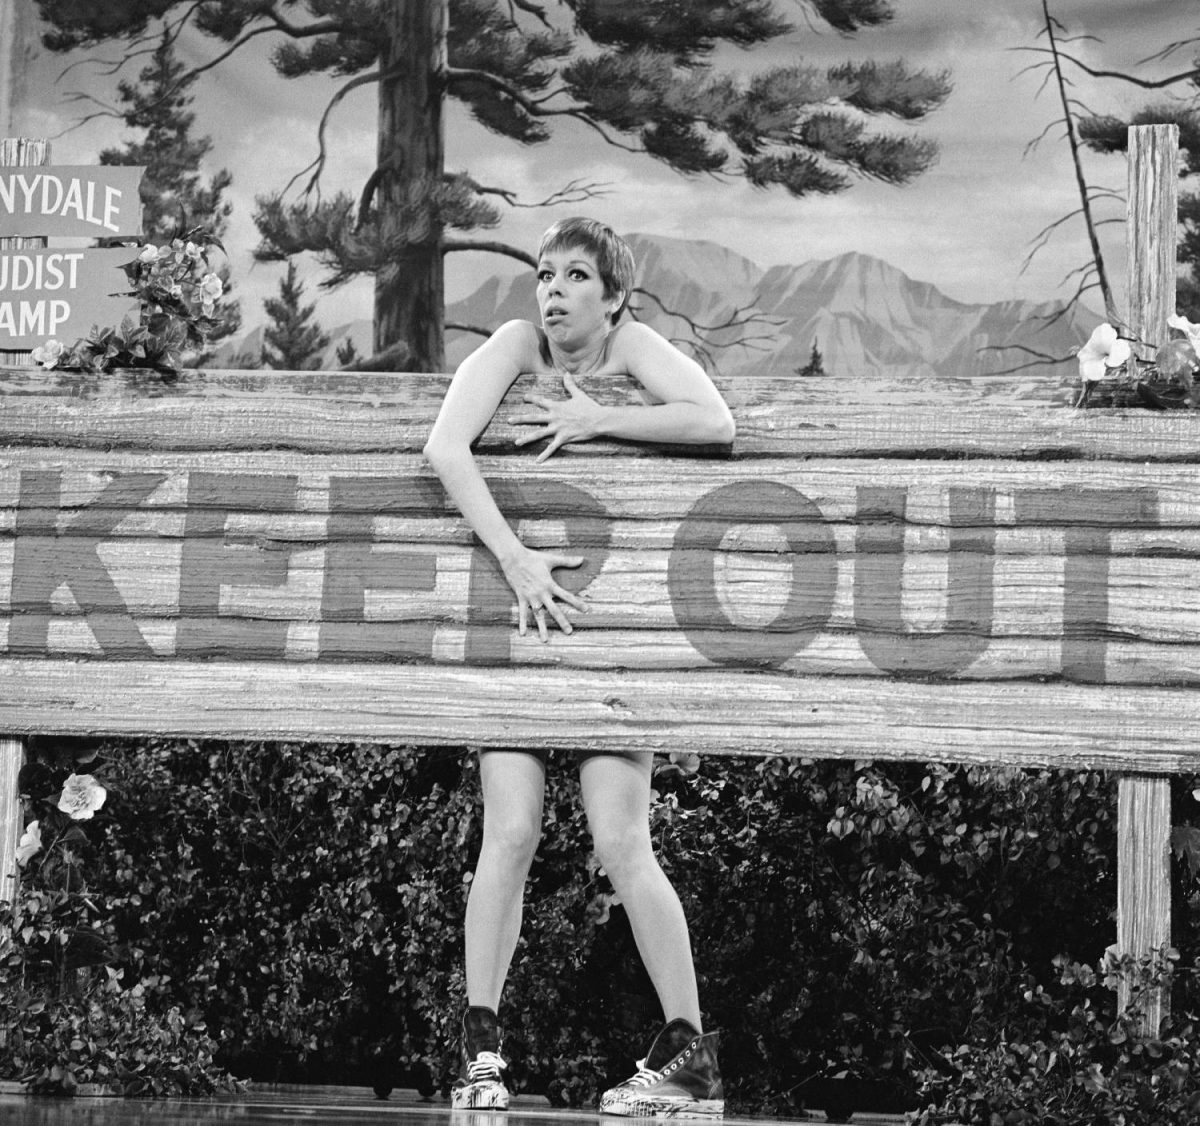 Seemingly naked, American comedienne and actress Carol Burnett hides behind a large wooden sign labelled 'Keep Out' during a skit on 'The Carol Burnett Show,' October 28, 1967.